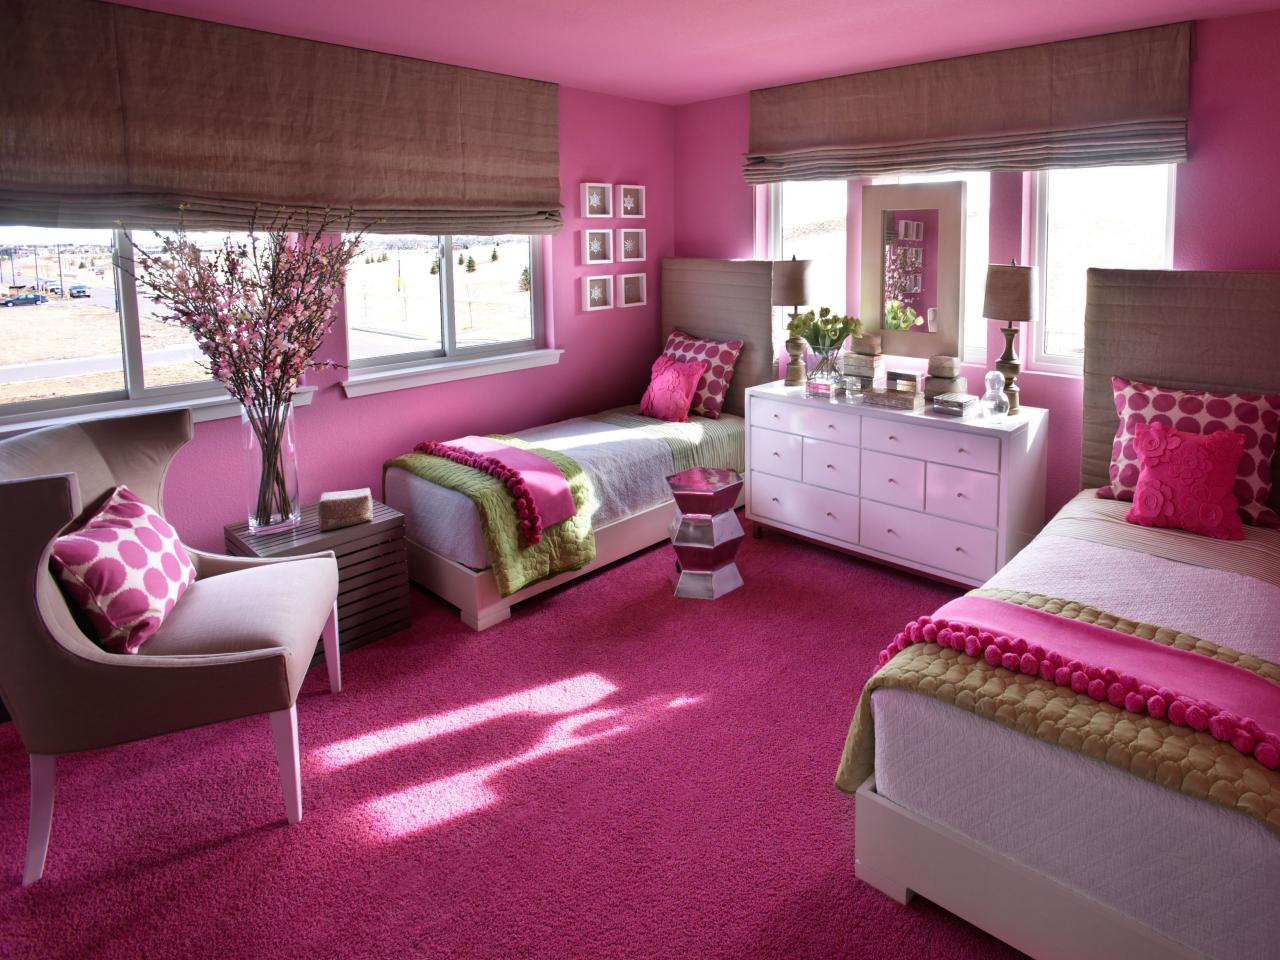 Bedroom color design for girls - Tags